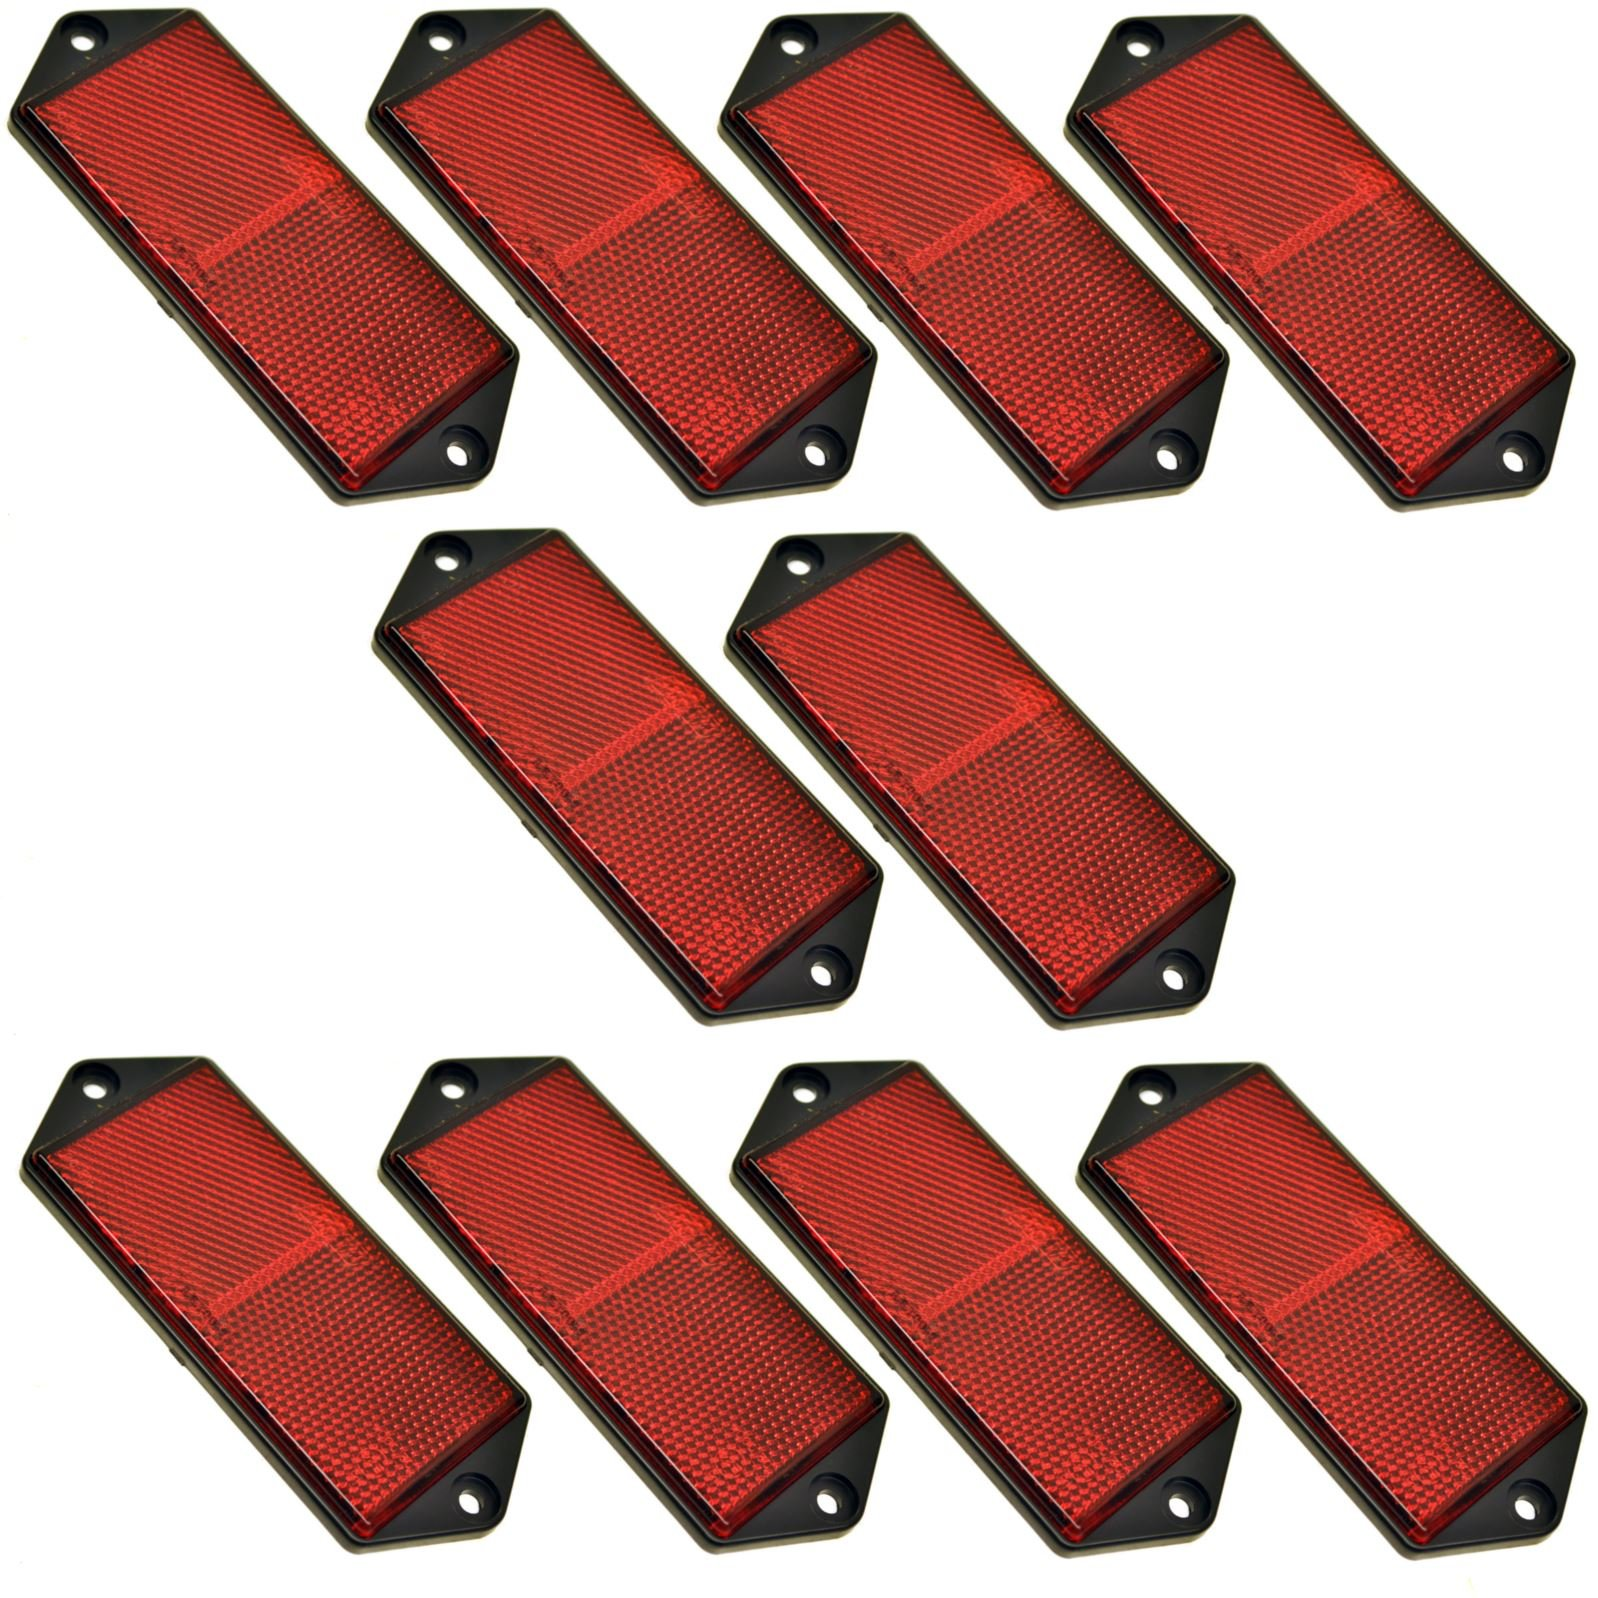 AB Tools-Maypole Red Large Rectangular Rear Reflector Pack of 10 Trailer Fence/Gate Post TR073